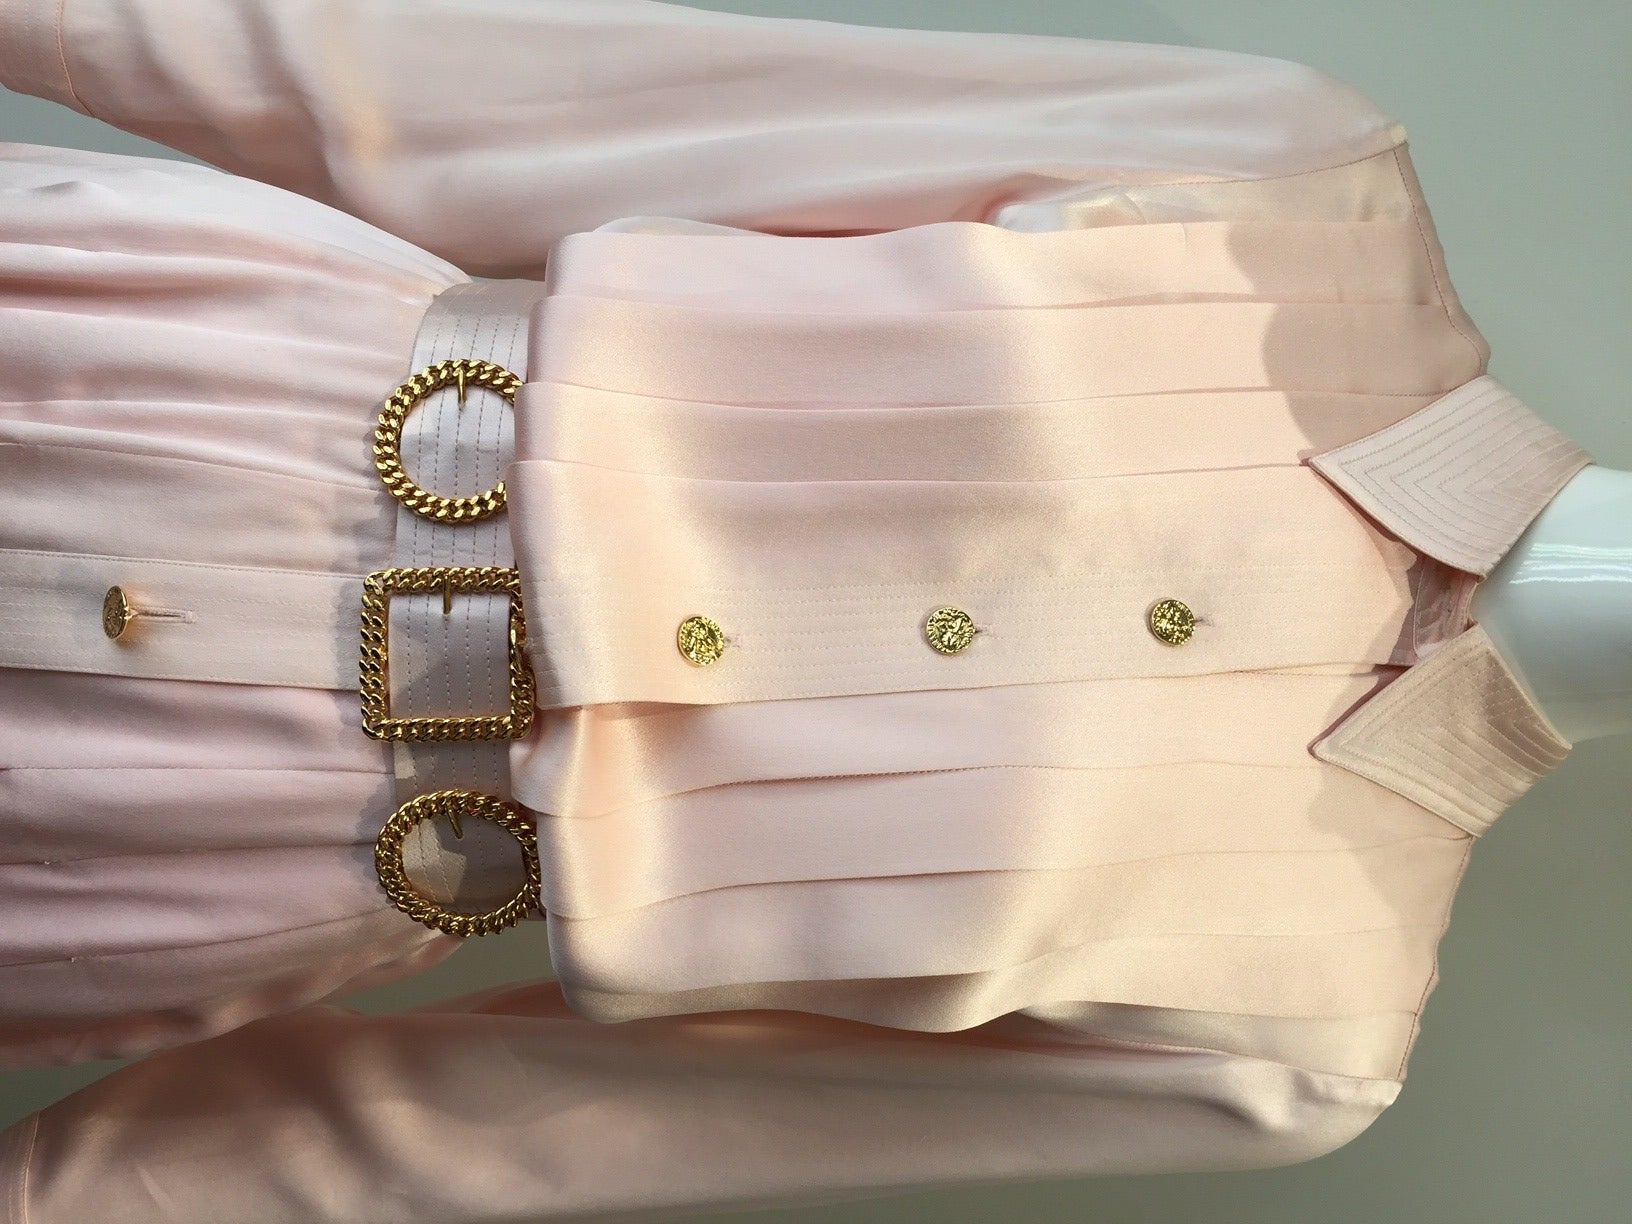 Lovely Pale Pink Silk Charmeuse shirt dress by Chanel.